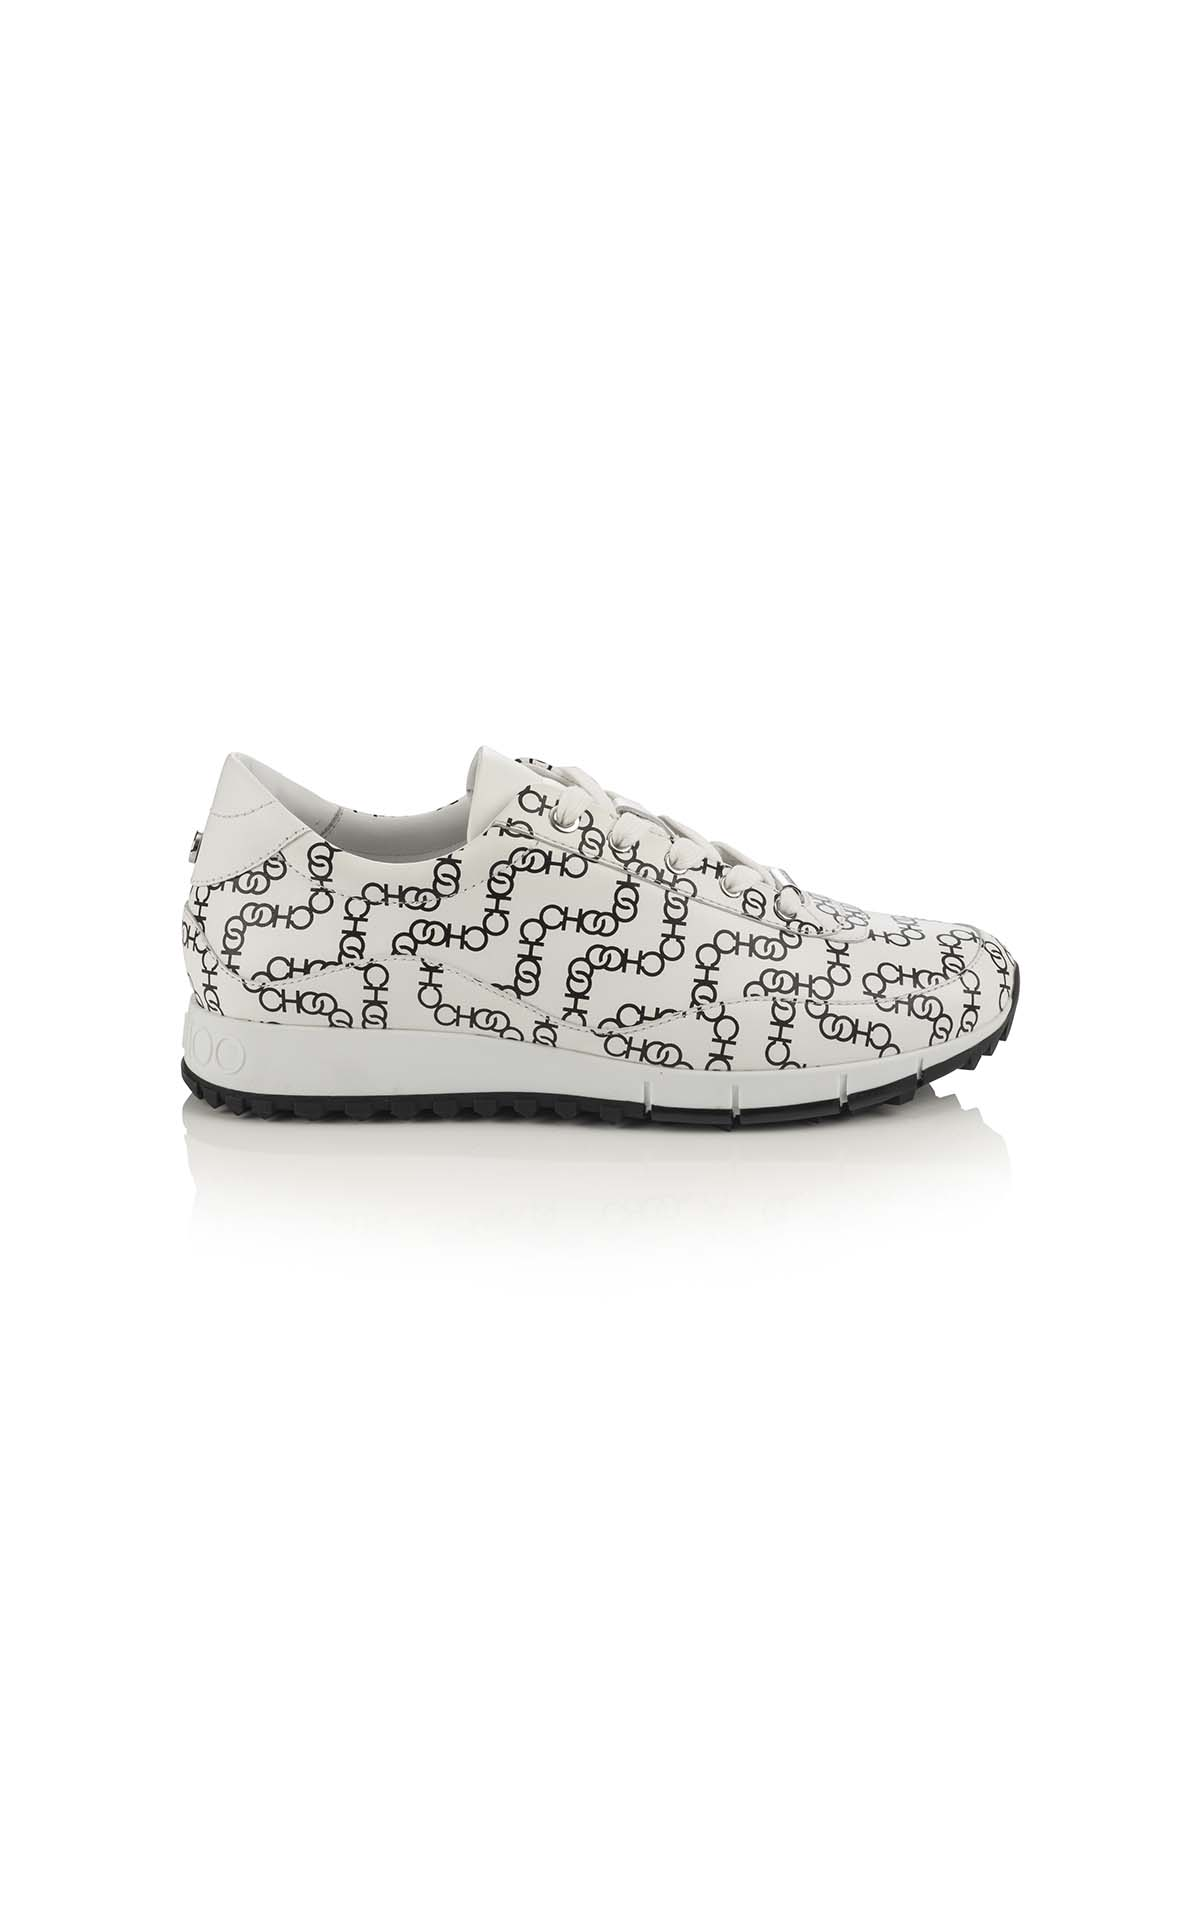 Jimmy Choo monza leather print choo chain white black at The Bicester Village Shopping Collection